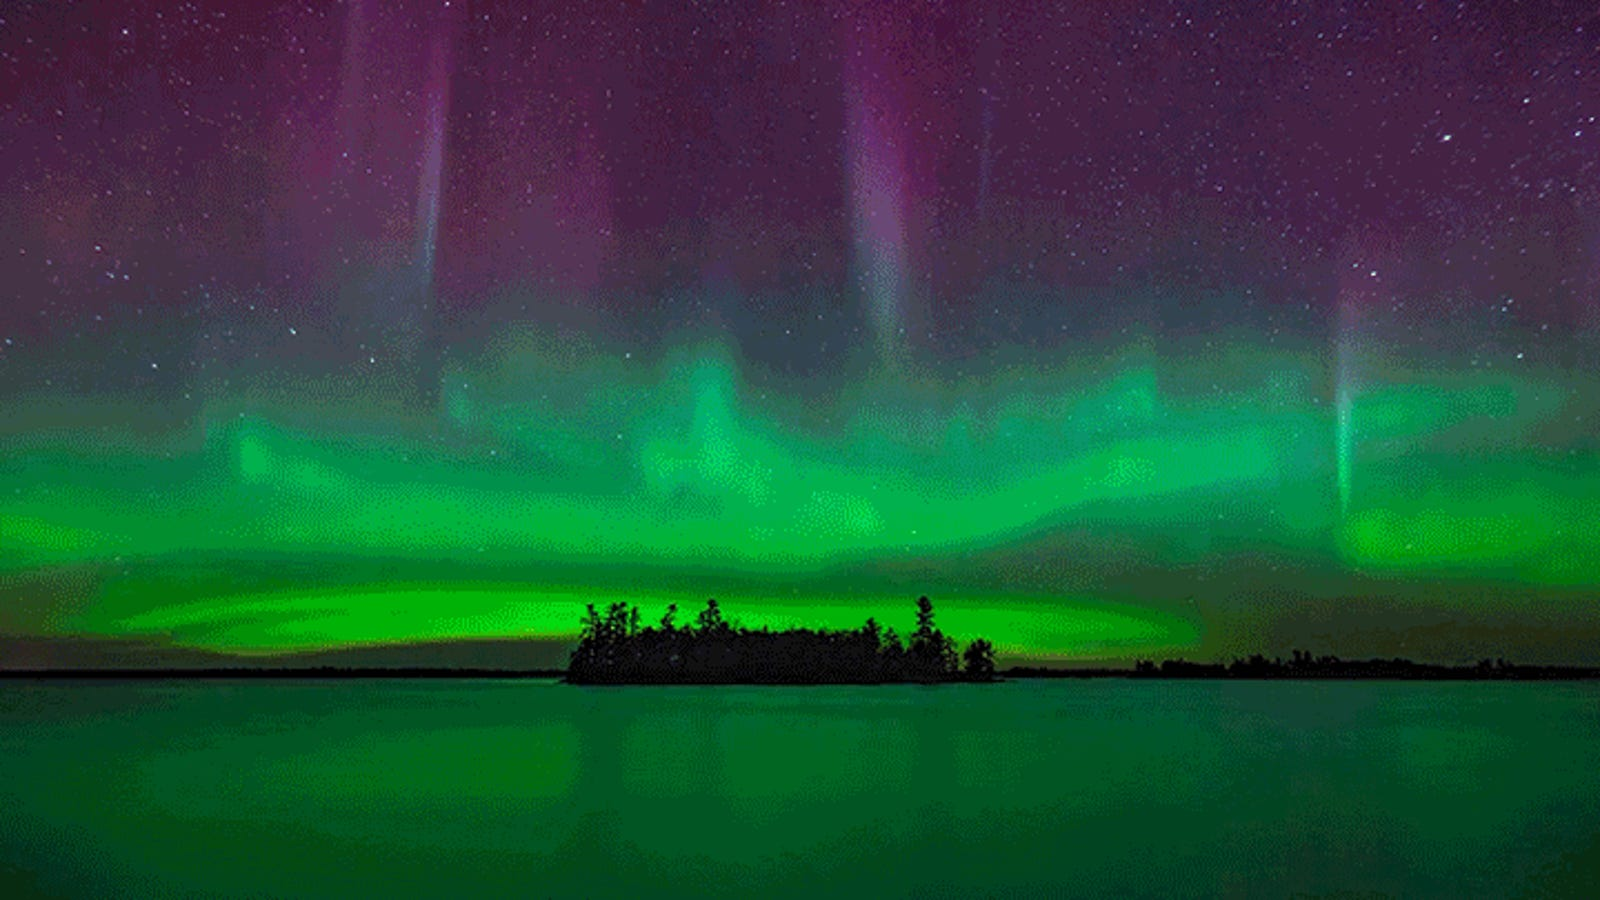 The Northern Lights Look Absolutely Breathtaking in This